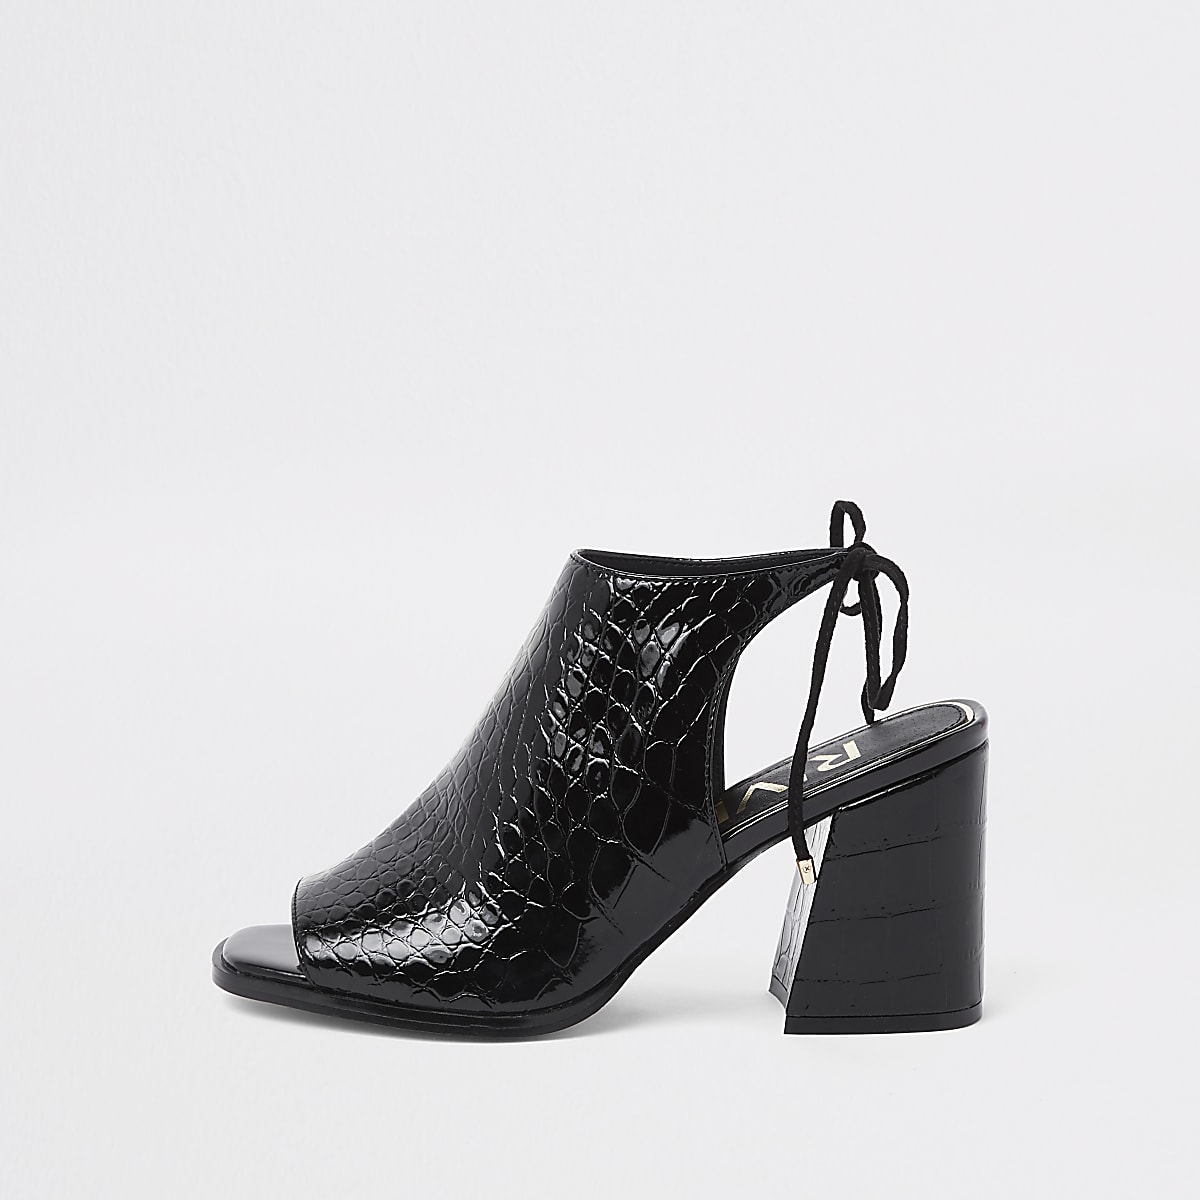 Black croc tie back block heel shoe boots